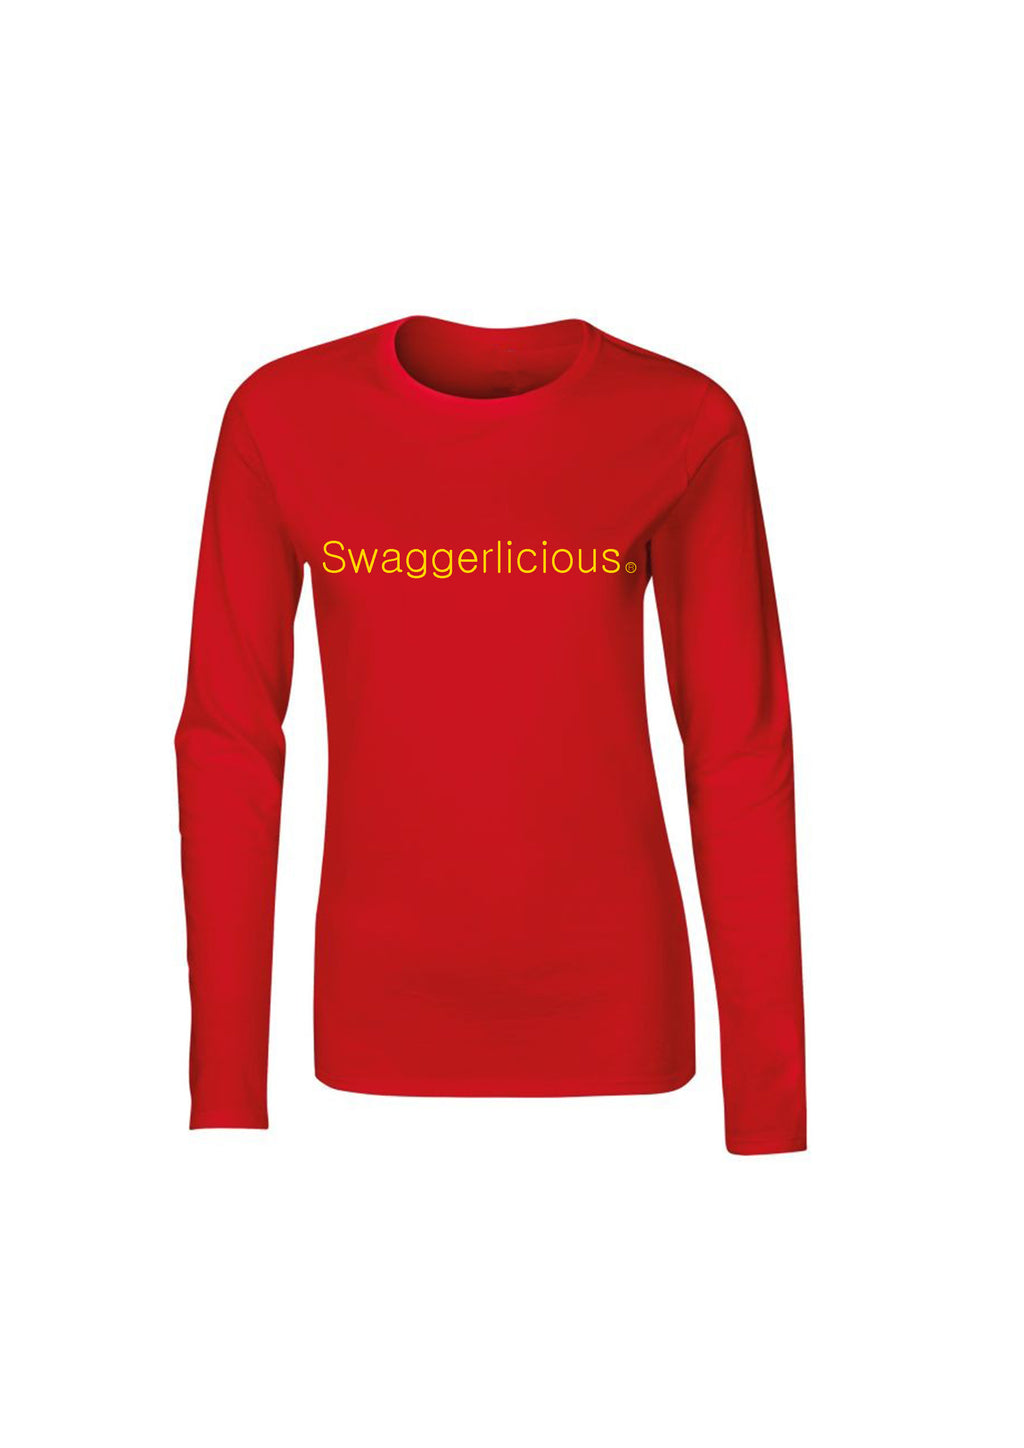 RED SWAGGERLICIOUS LADIES LONG SLEEVE TOP - swaggerlicious-clothing.com